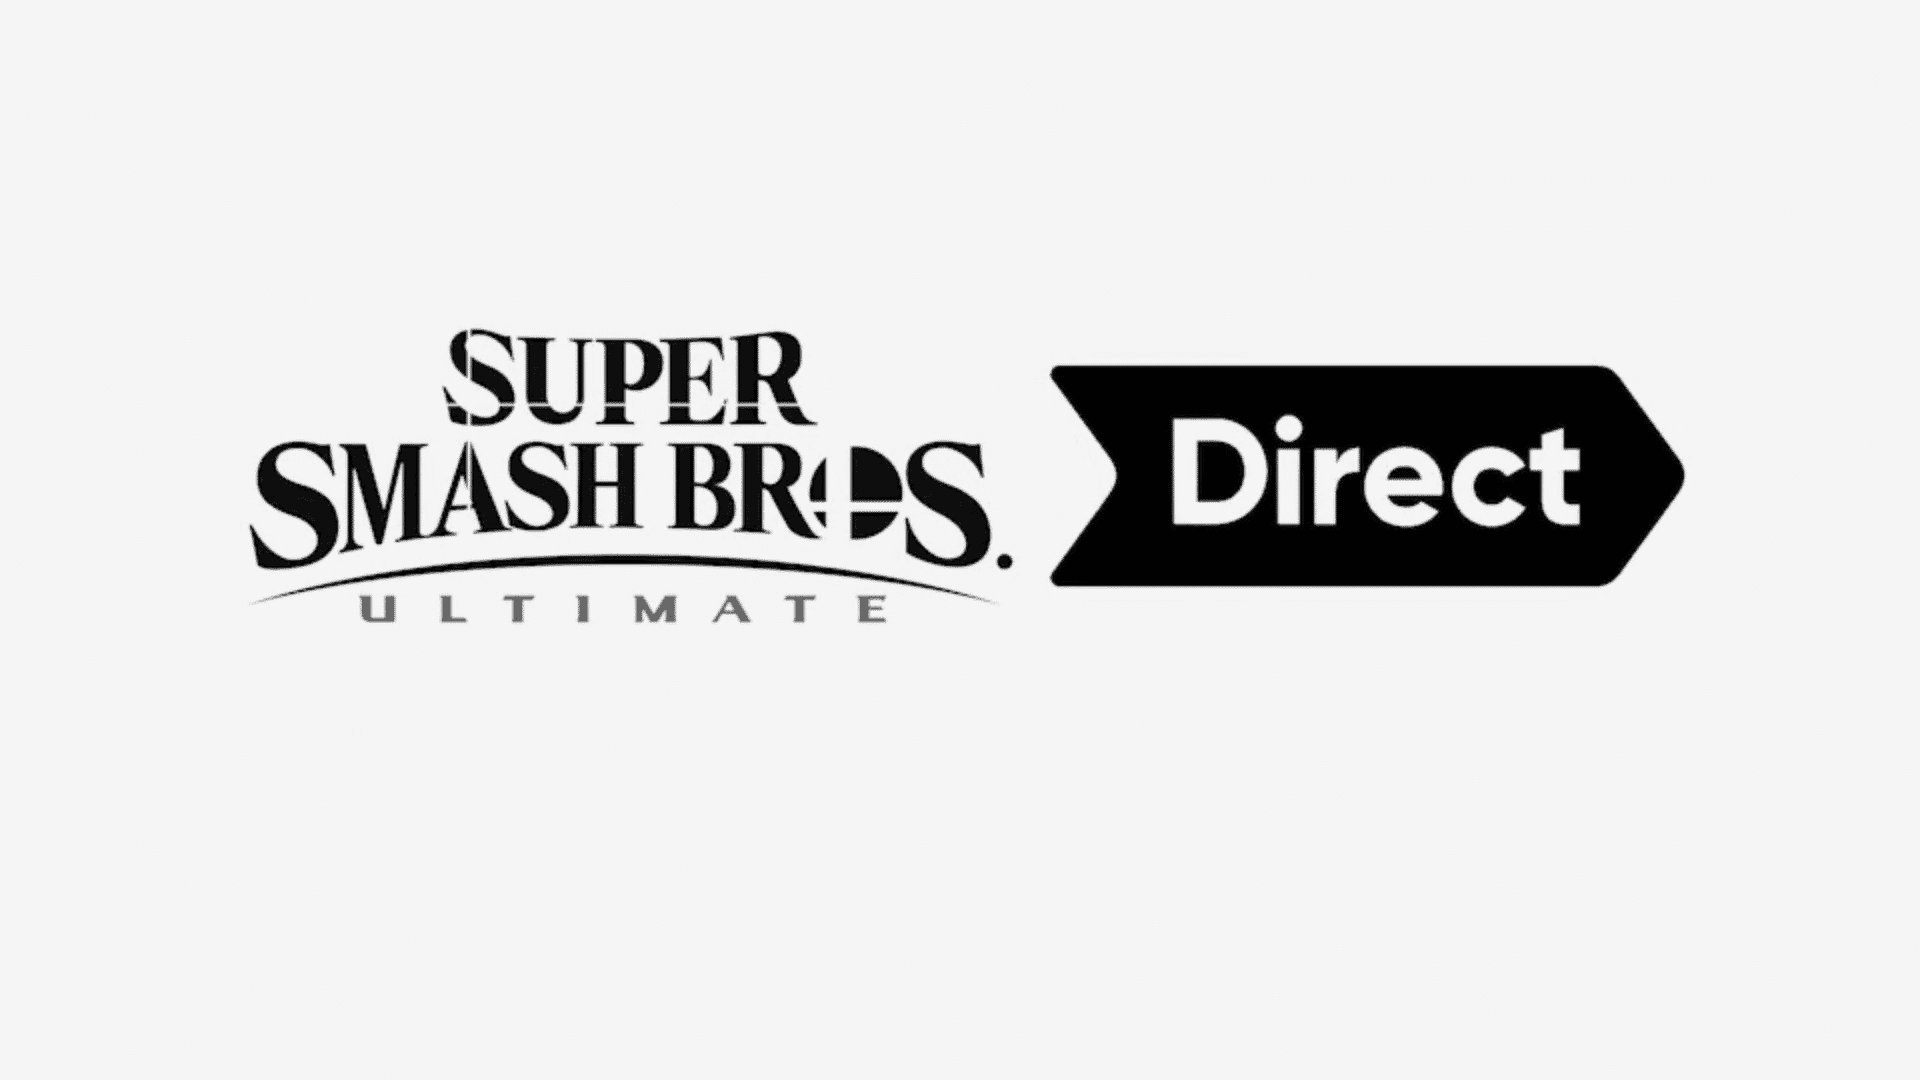 Anunciado Super Smash Bros. Ultimate Direct para este miércoles